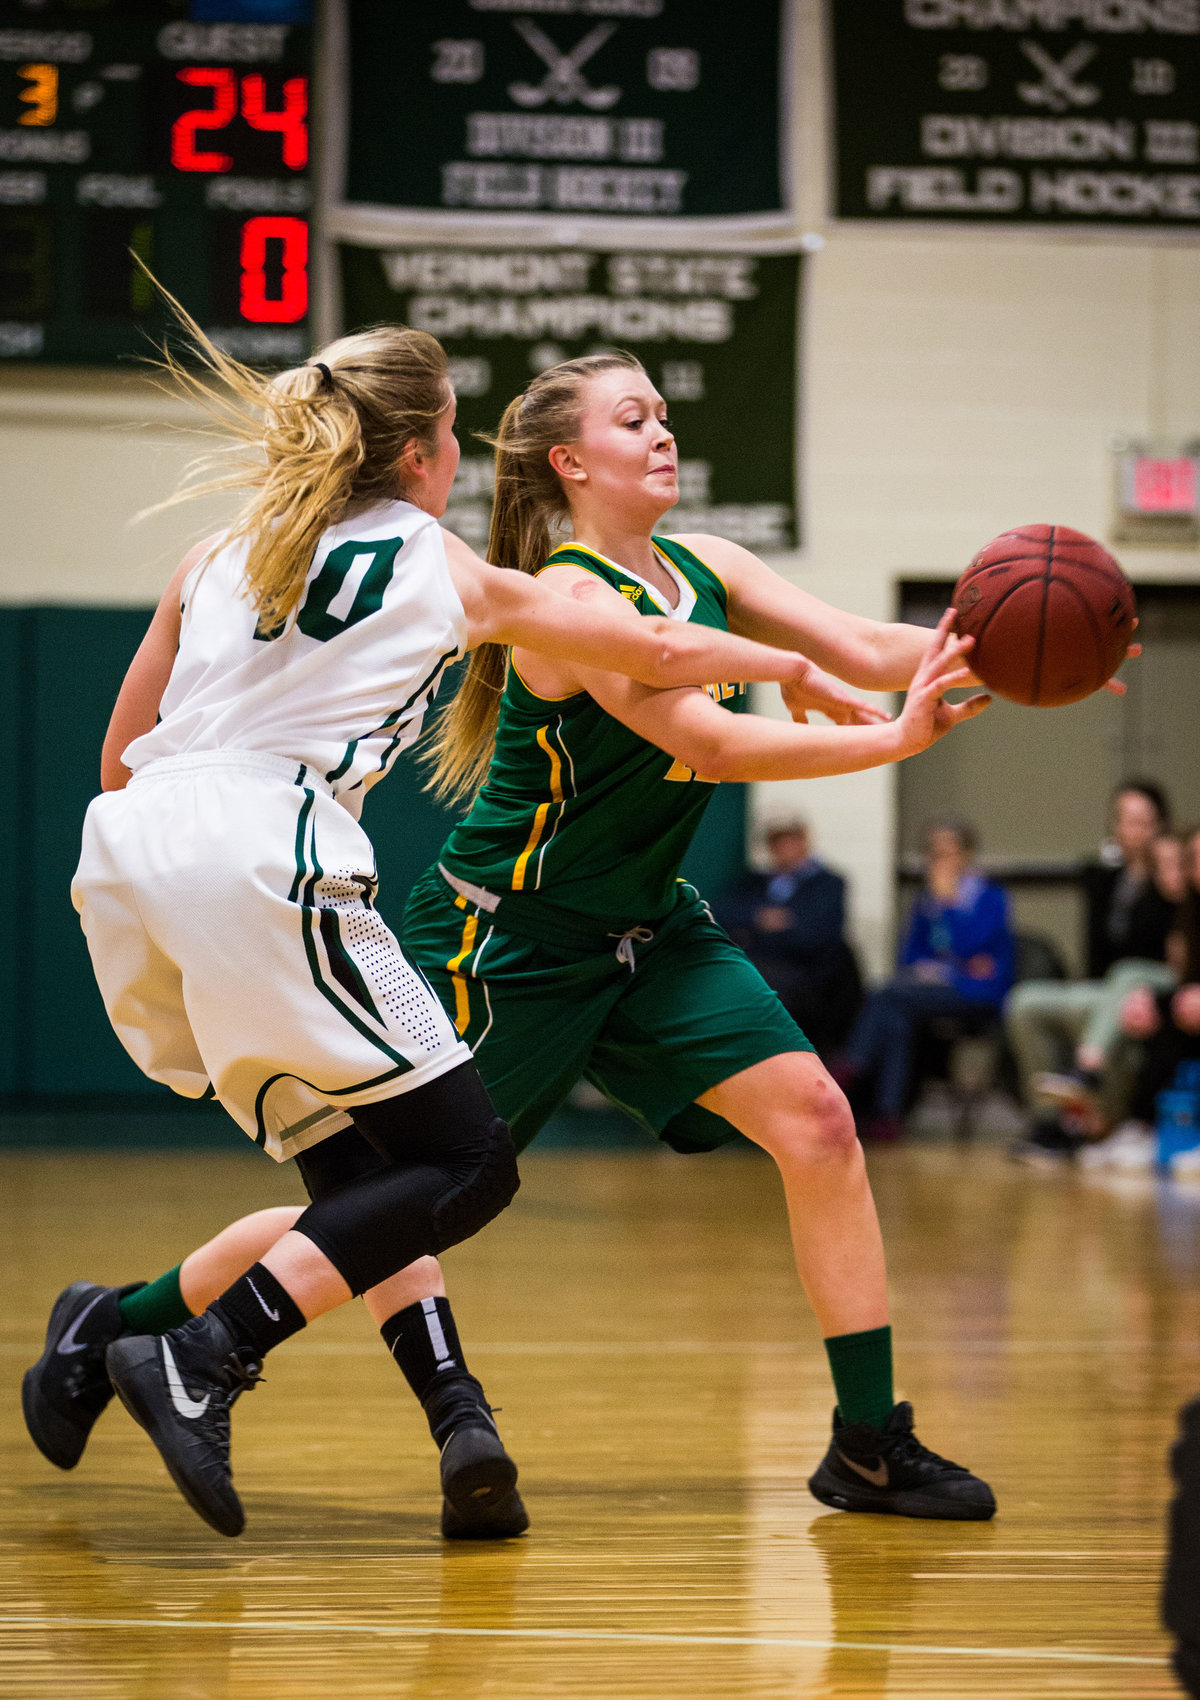 Hall-Potvin Photography Vermont Basketball Sports Photographer-12